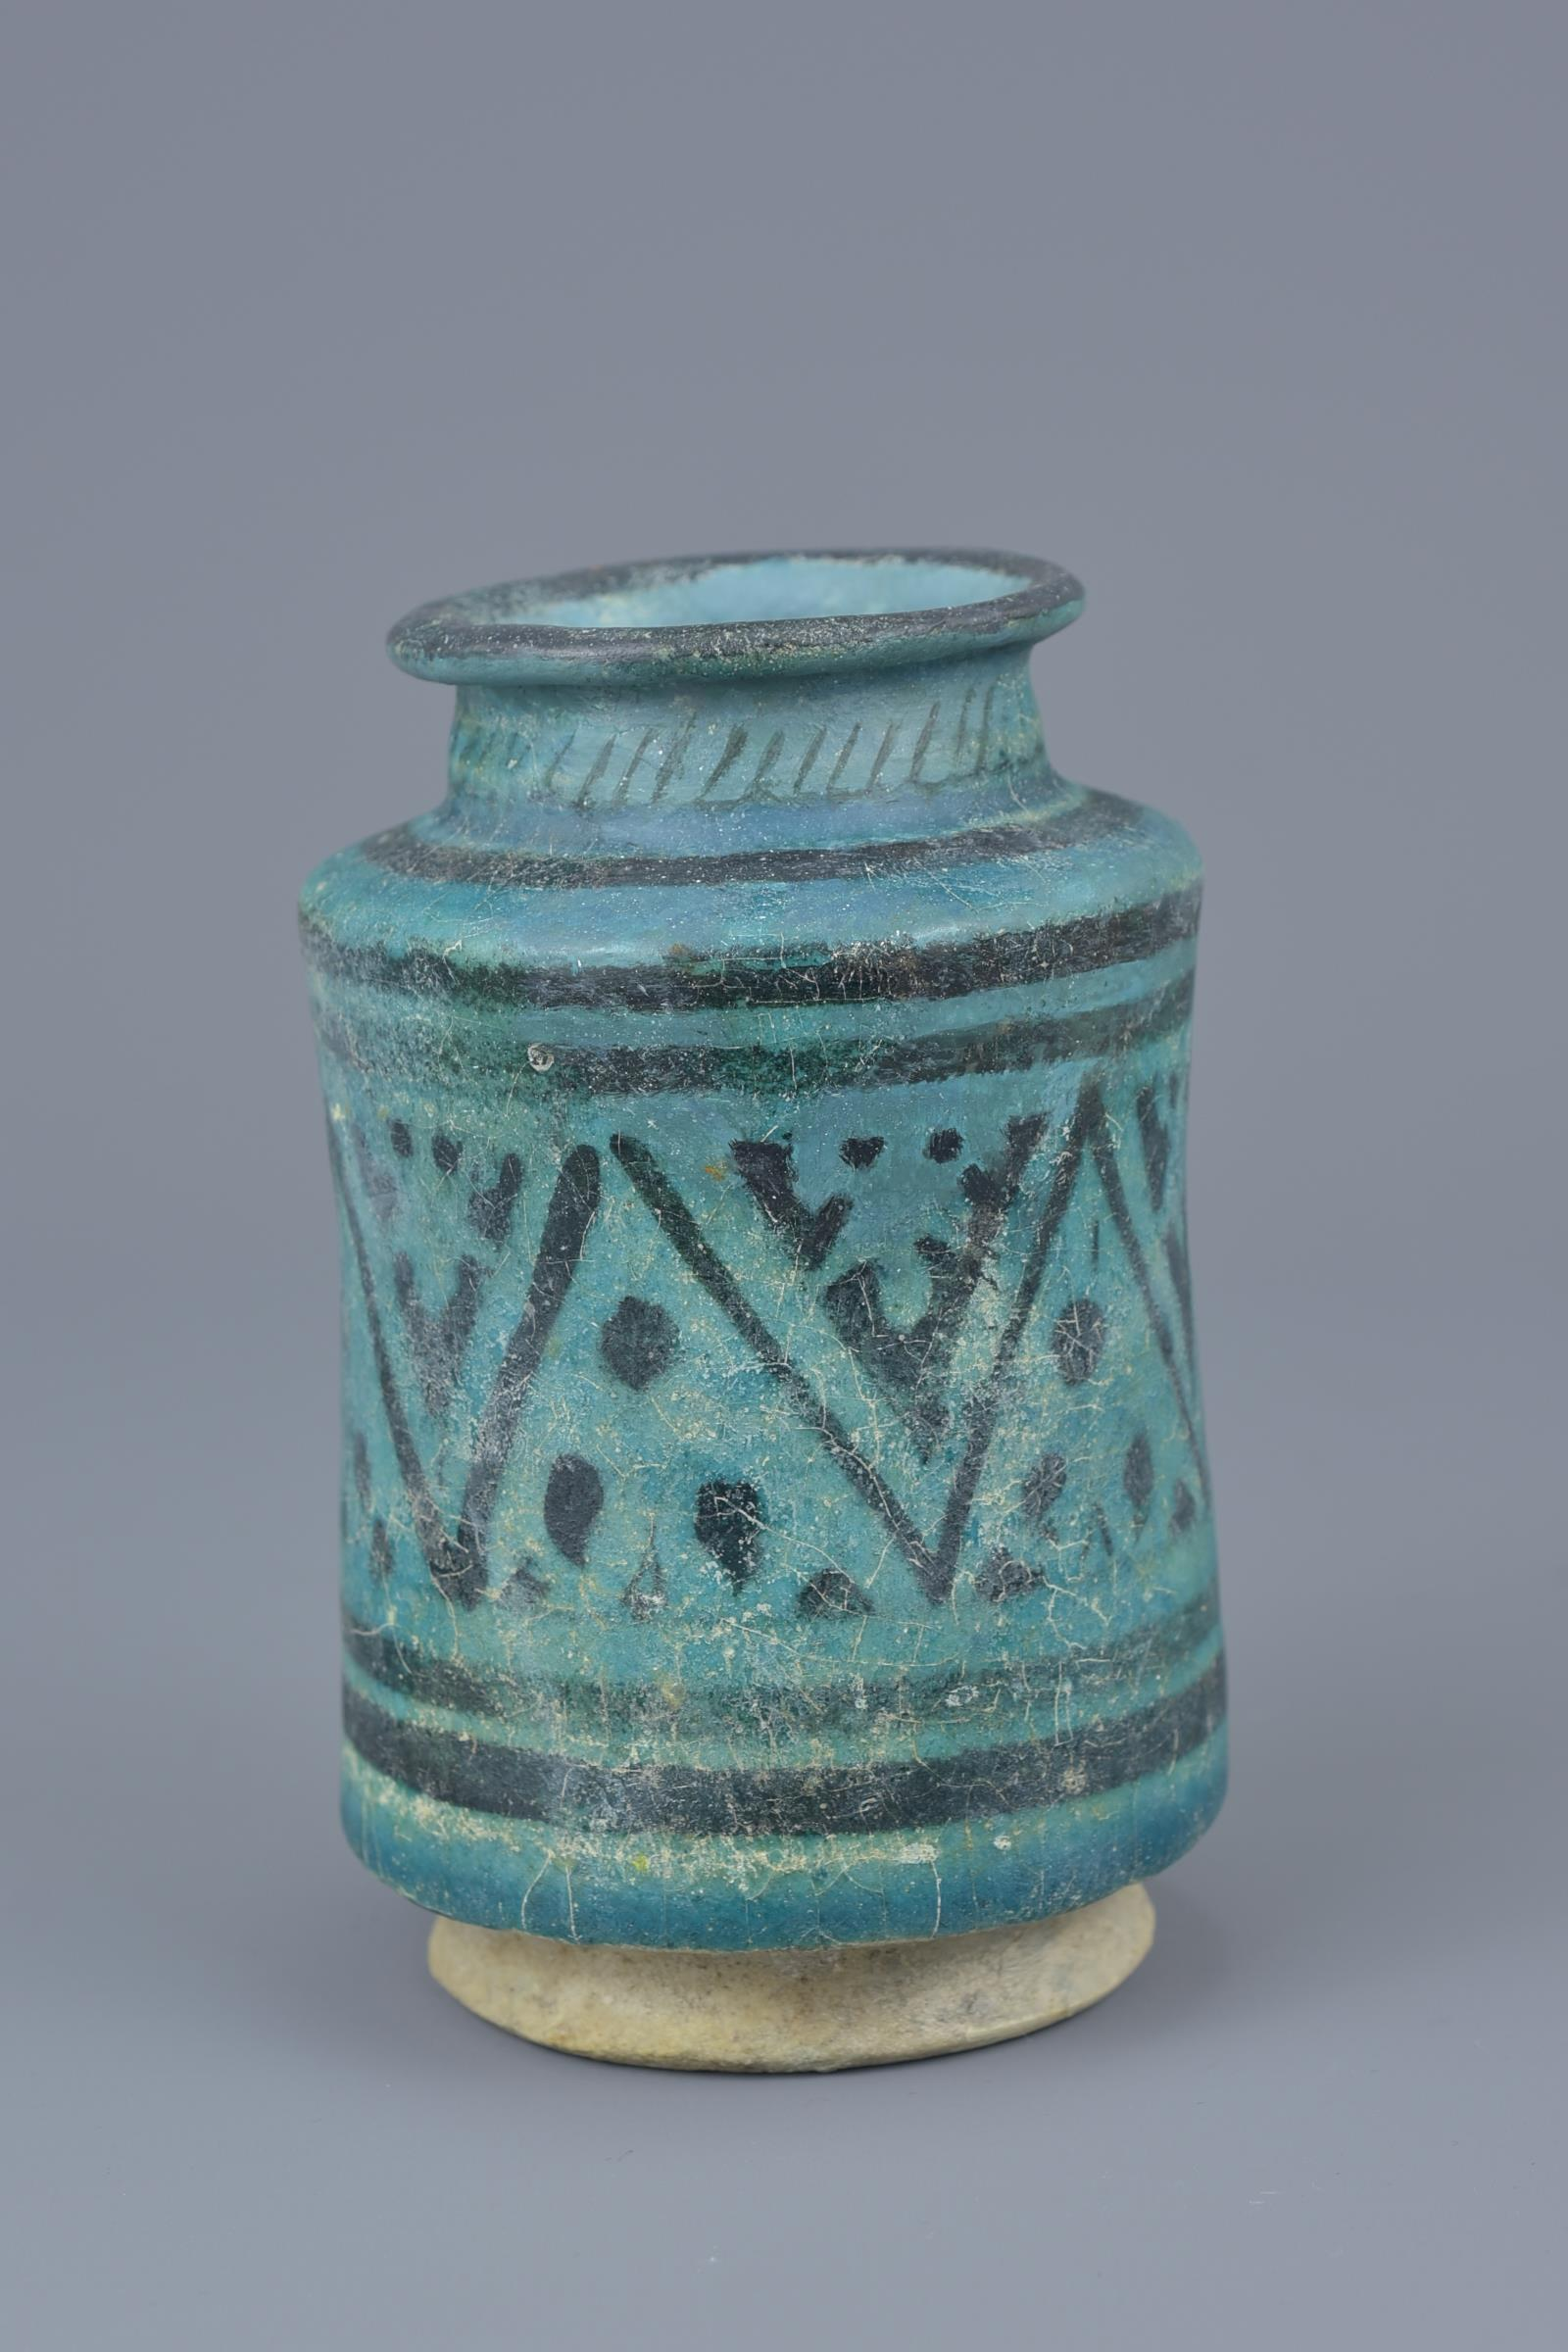 Lot 18 - A Middle Eastern blue-glazed pottery vase possibly 12th century. 12cm height